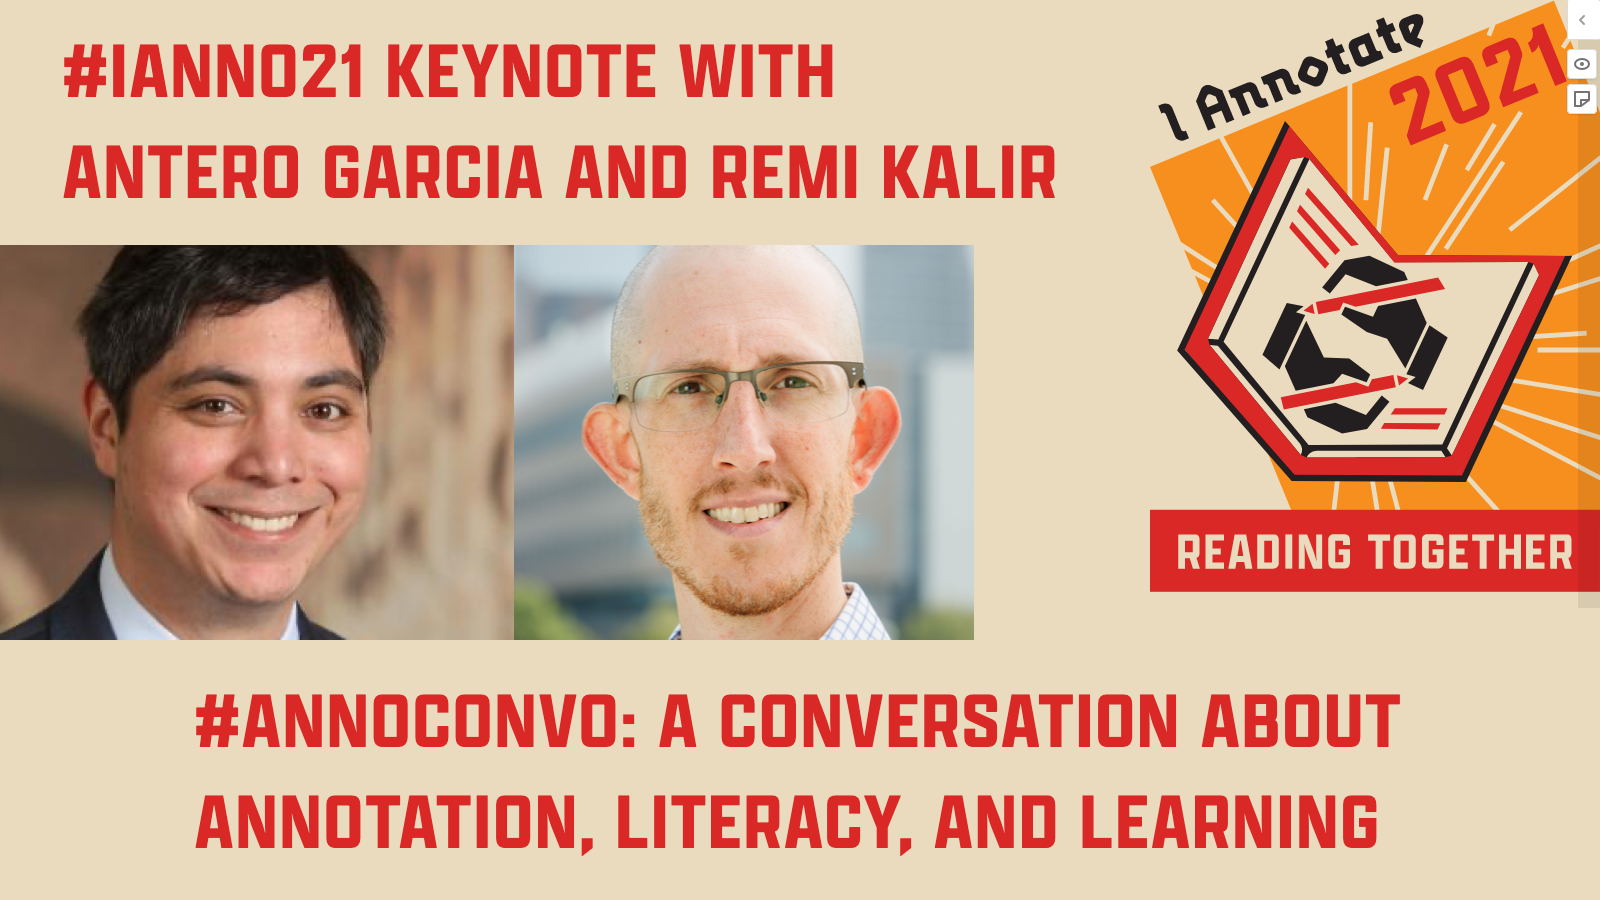 """Thumbnail from Antero Garcia and Remi Kalir's #ianno21 Keynote video, showing their headshots, the event logo, and the title of their session: """"#AnnoConvo: A Conversation about Annotation, Literacy, and Learning"""""""